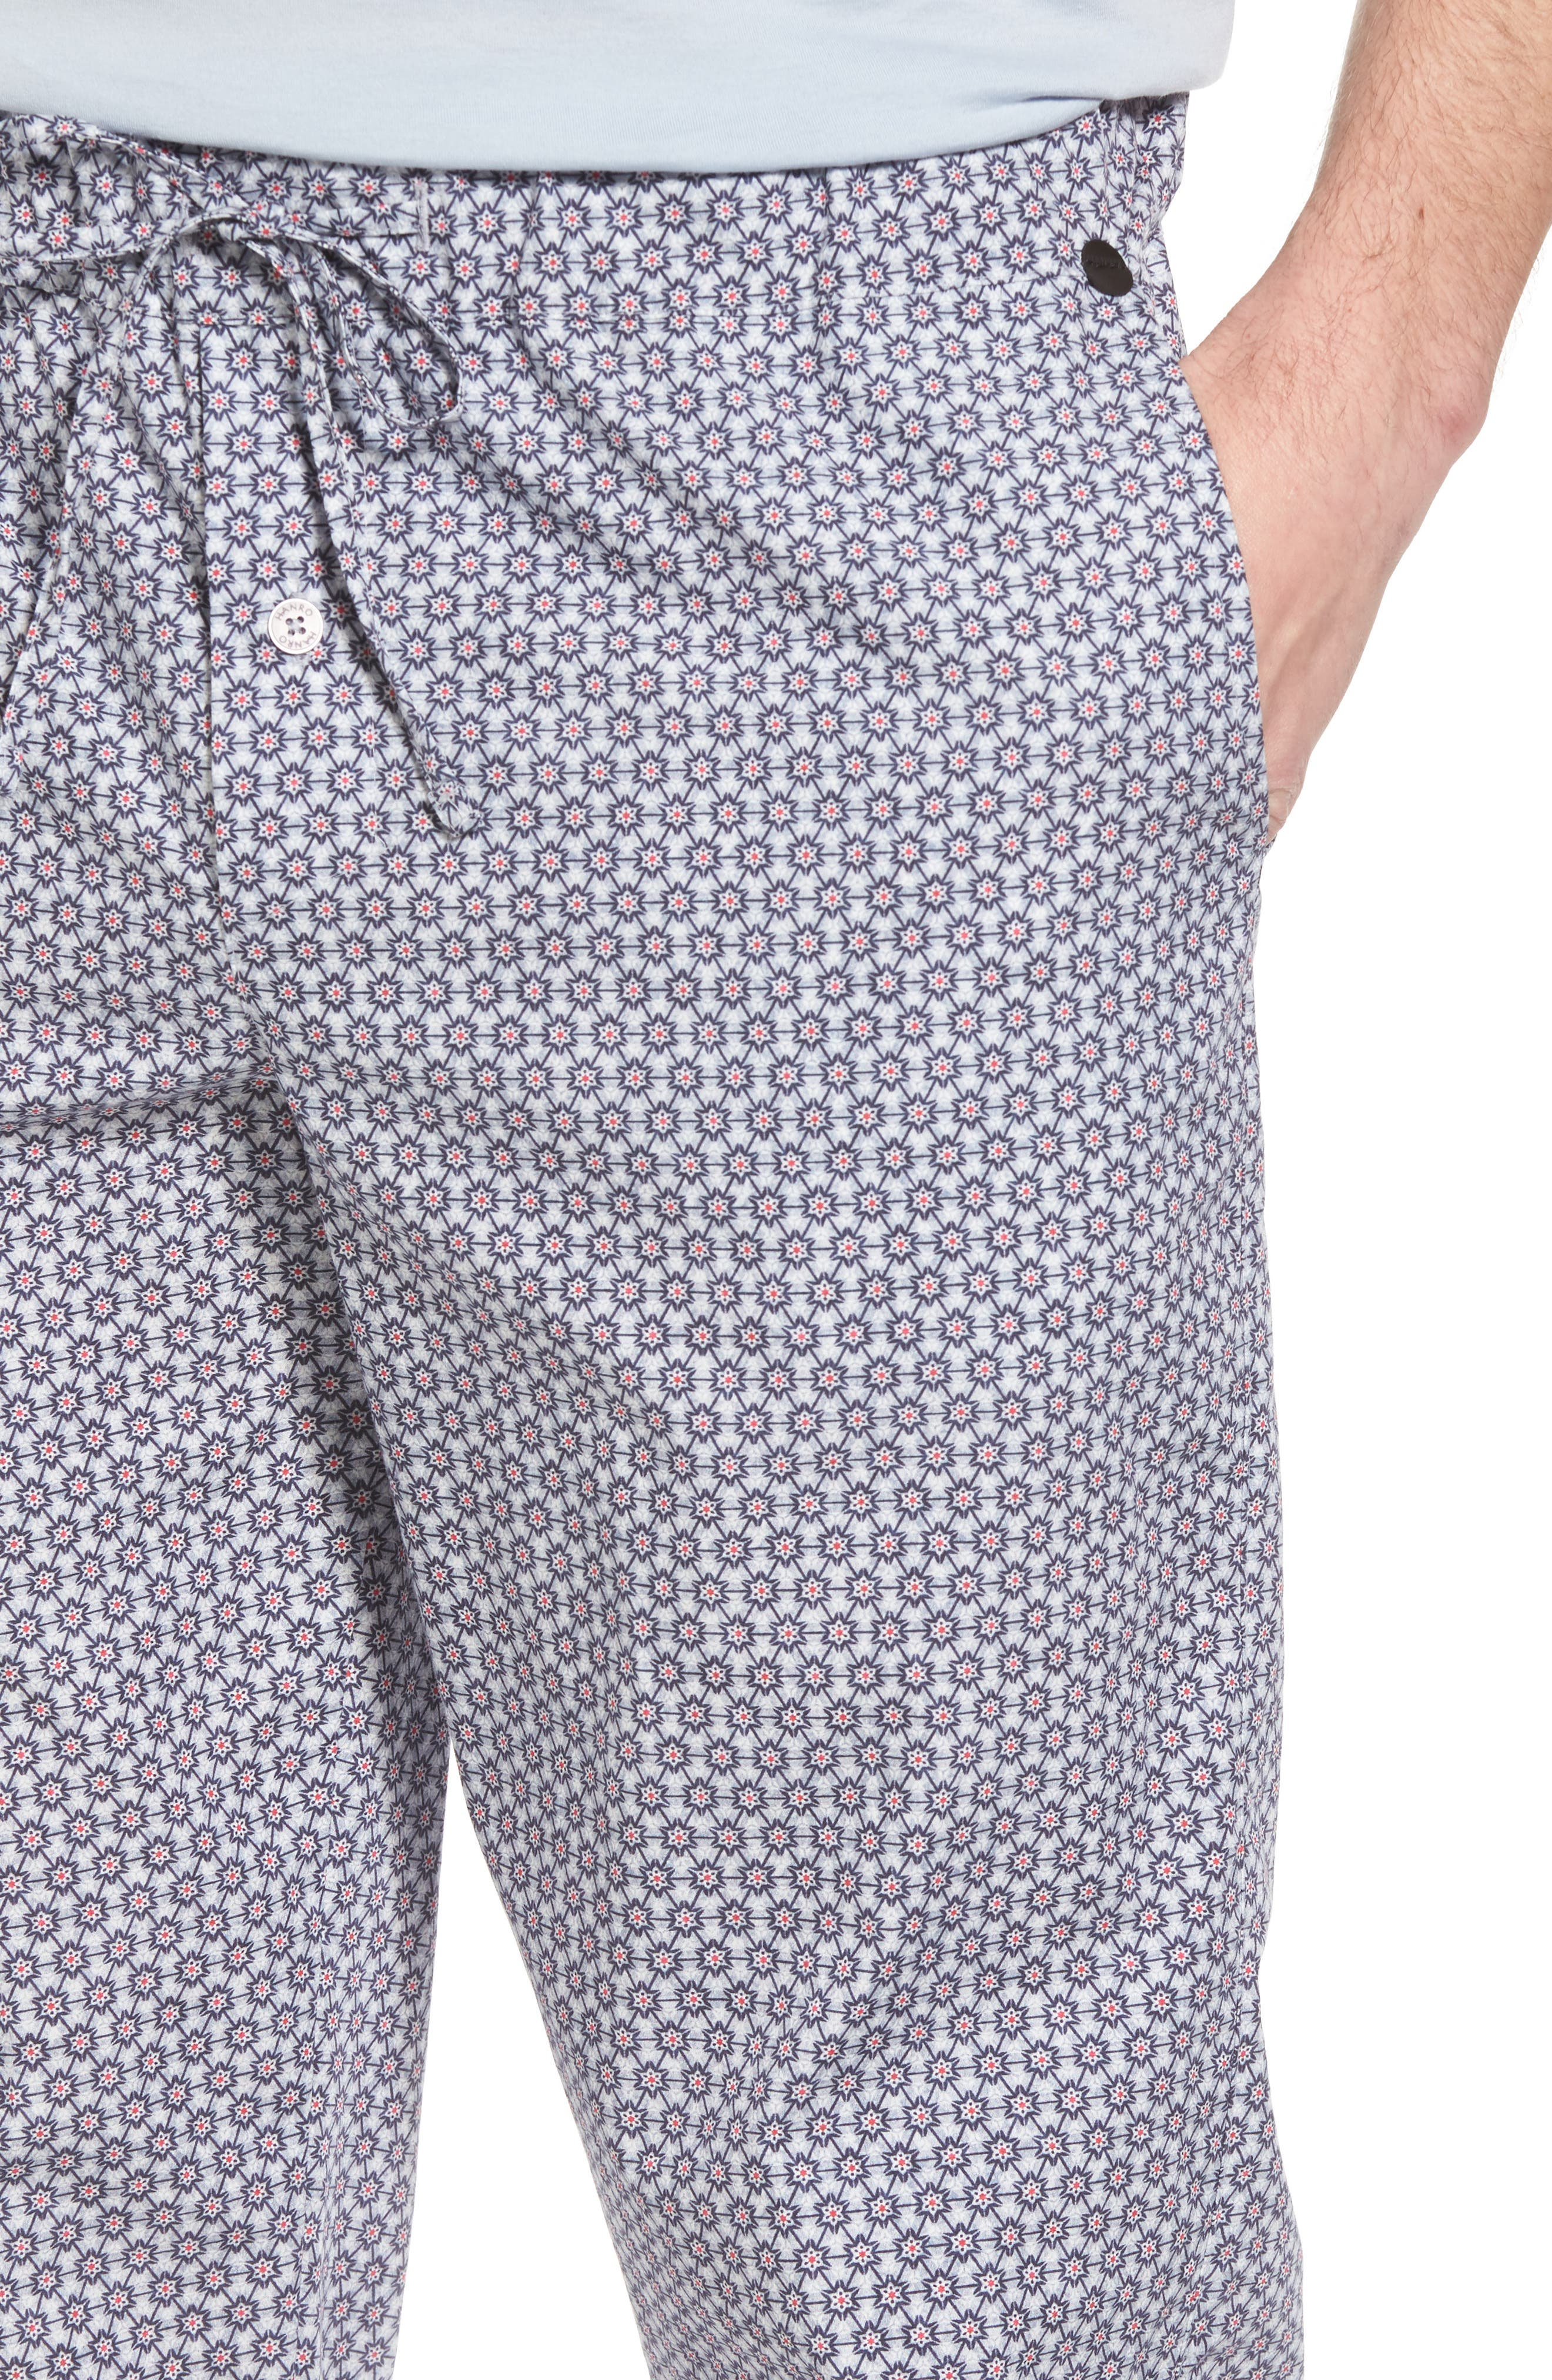 Night & Day Woven Lounge Pants,                             Alternate thumbnail 4, color,                             Classic Flower Print